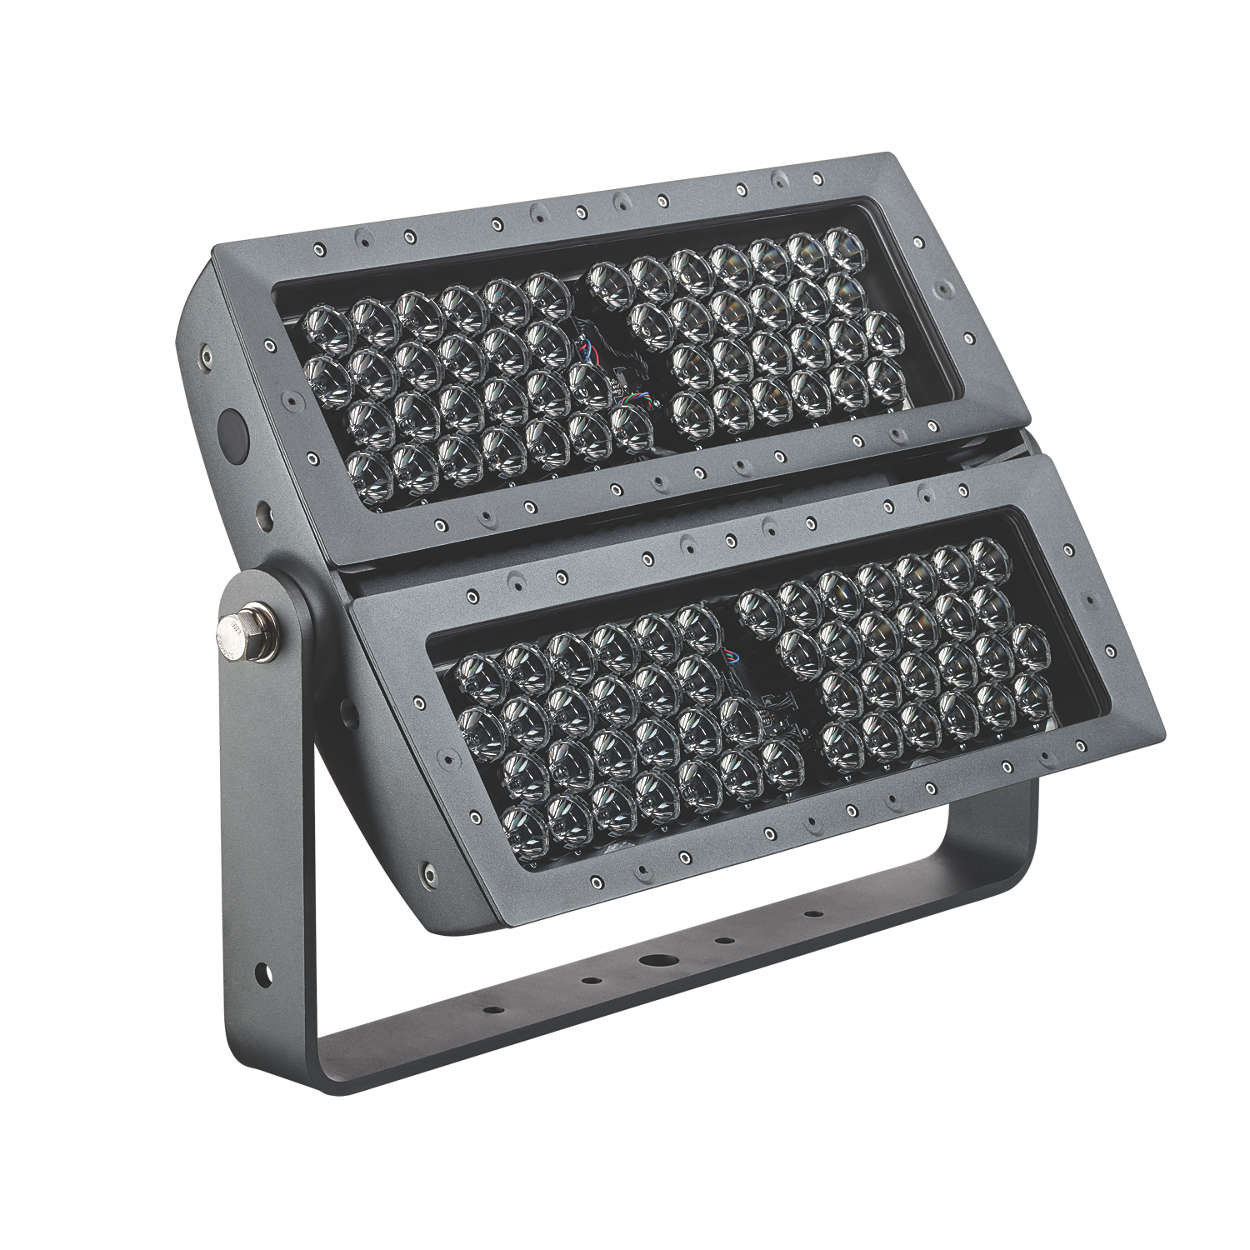 ColorReach Powercore Gen 2 – next-generation LED floodlight for signature façades and structures